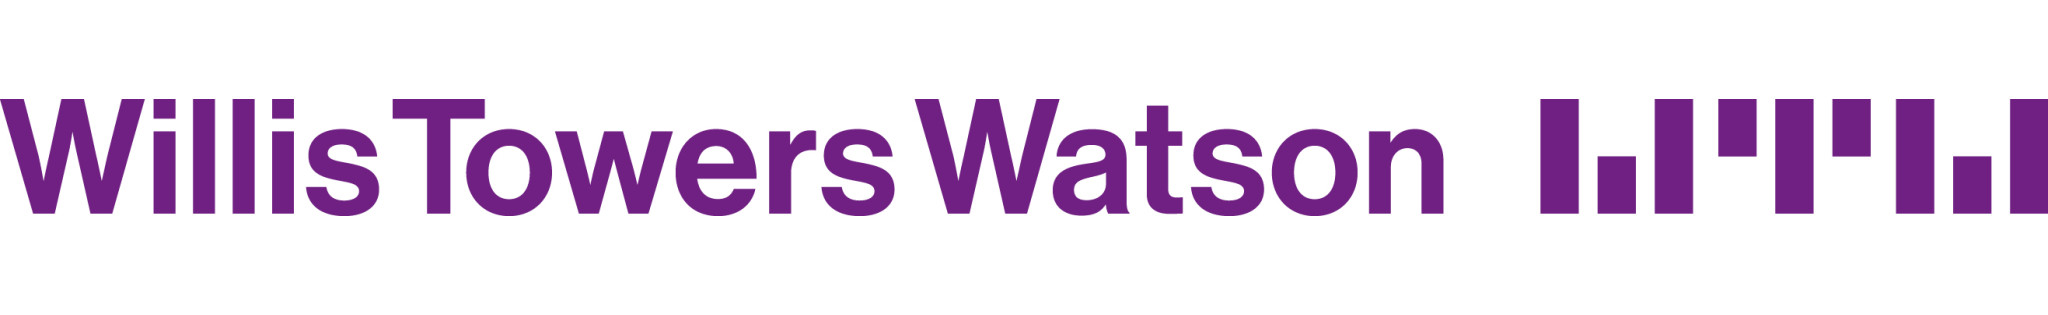 willis towers watson logos